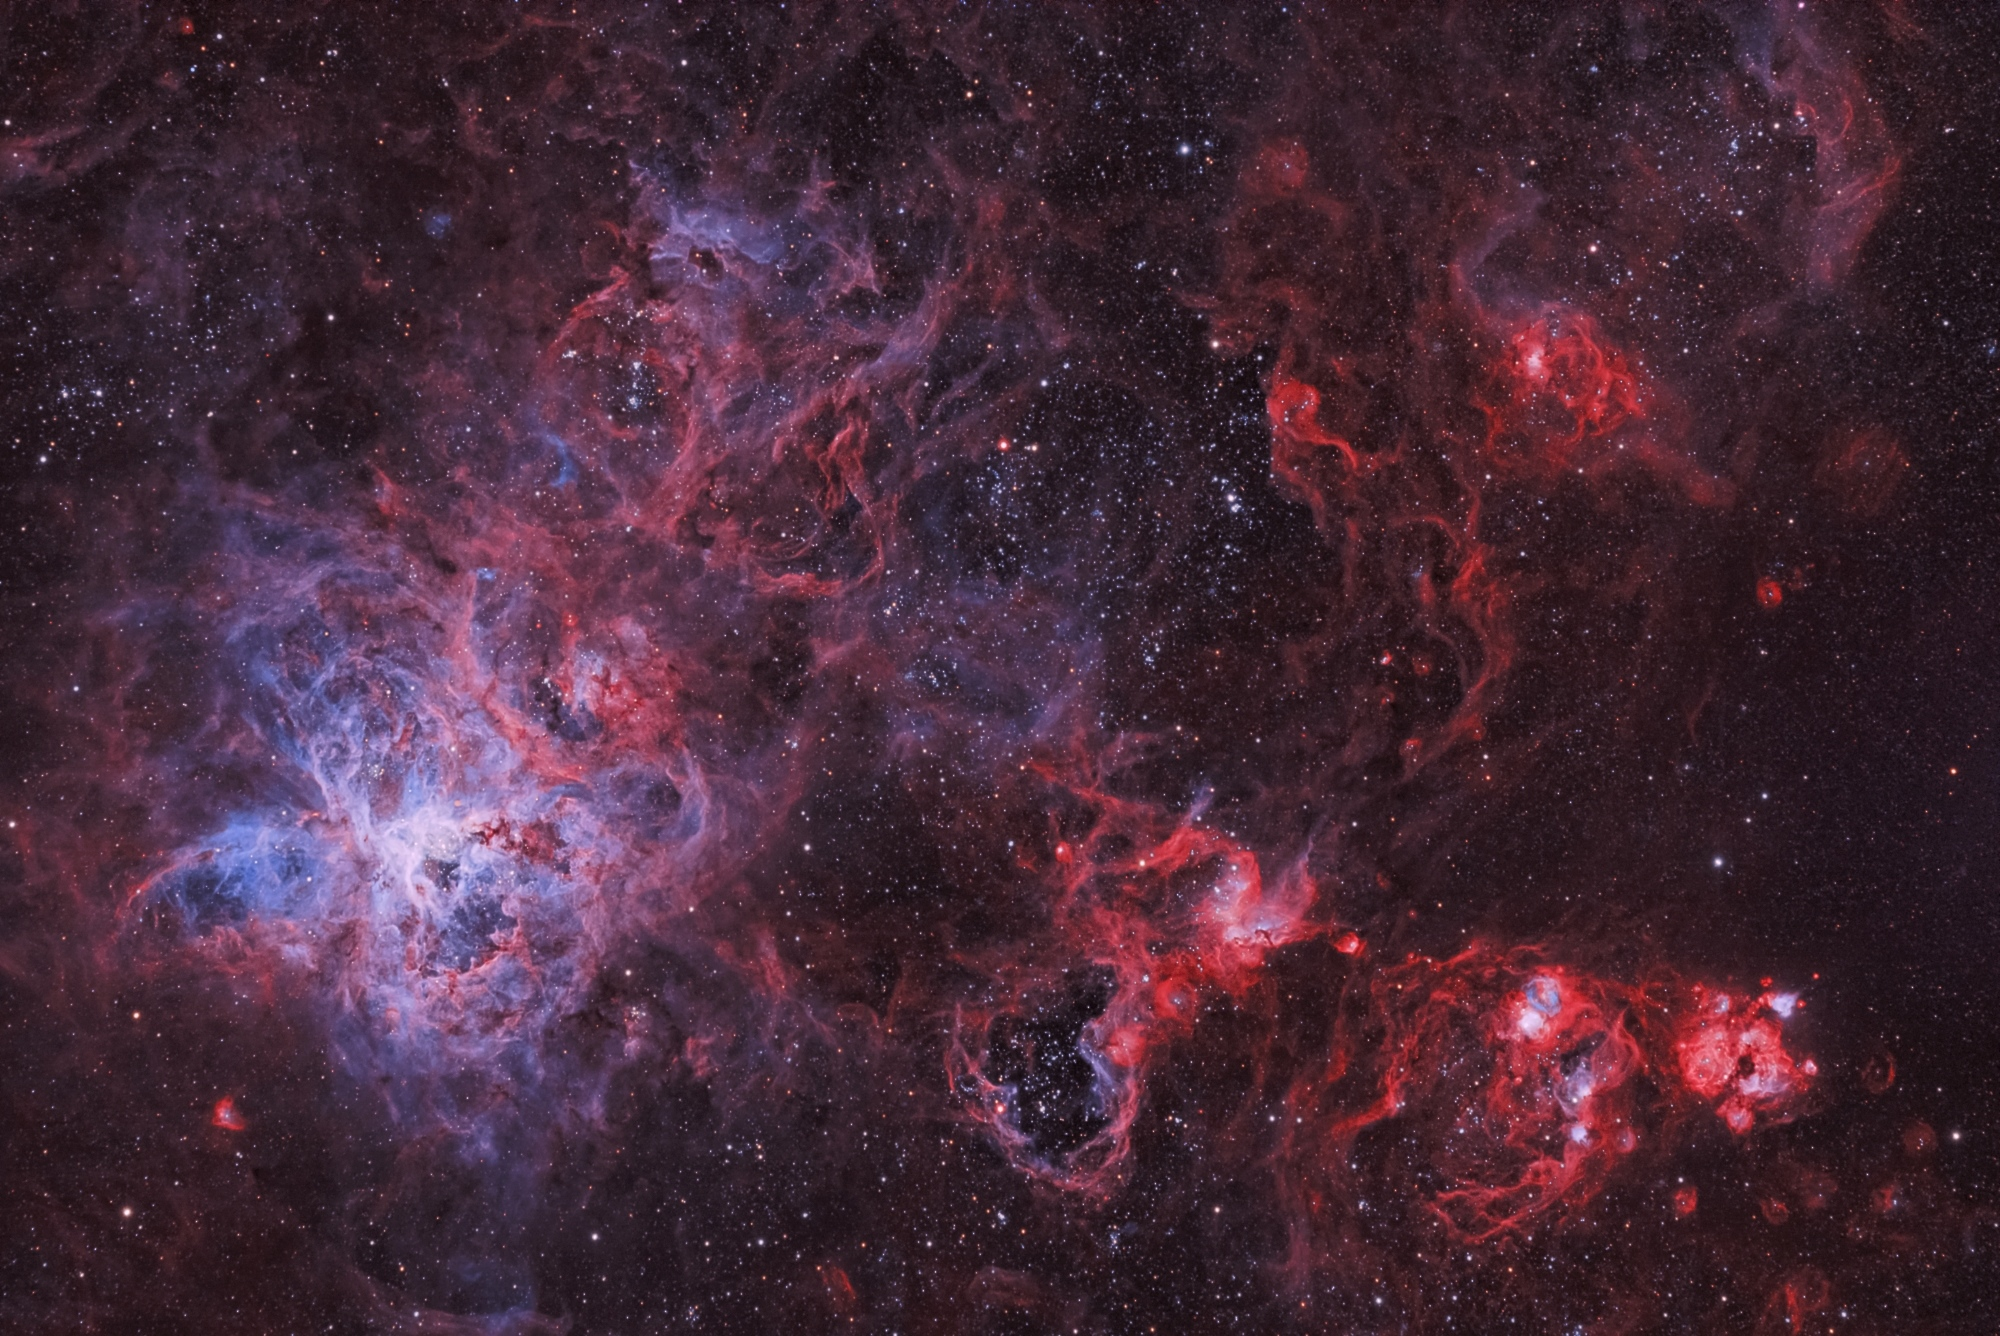 NGC 2070 - The Tarantula Nebula by Thomas Klemmer | Insight Investment Astronomy Photographer of the Year 2019 | Stars and Nebulae